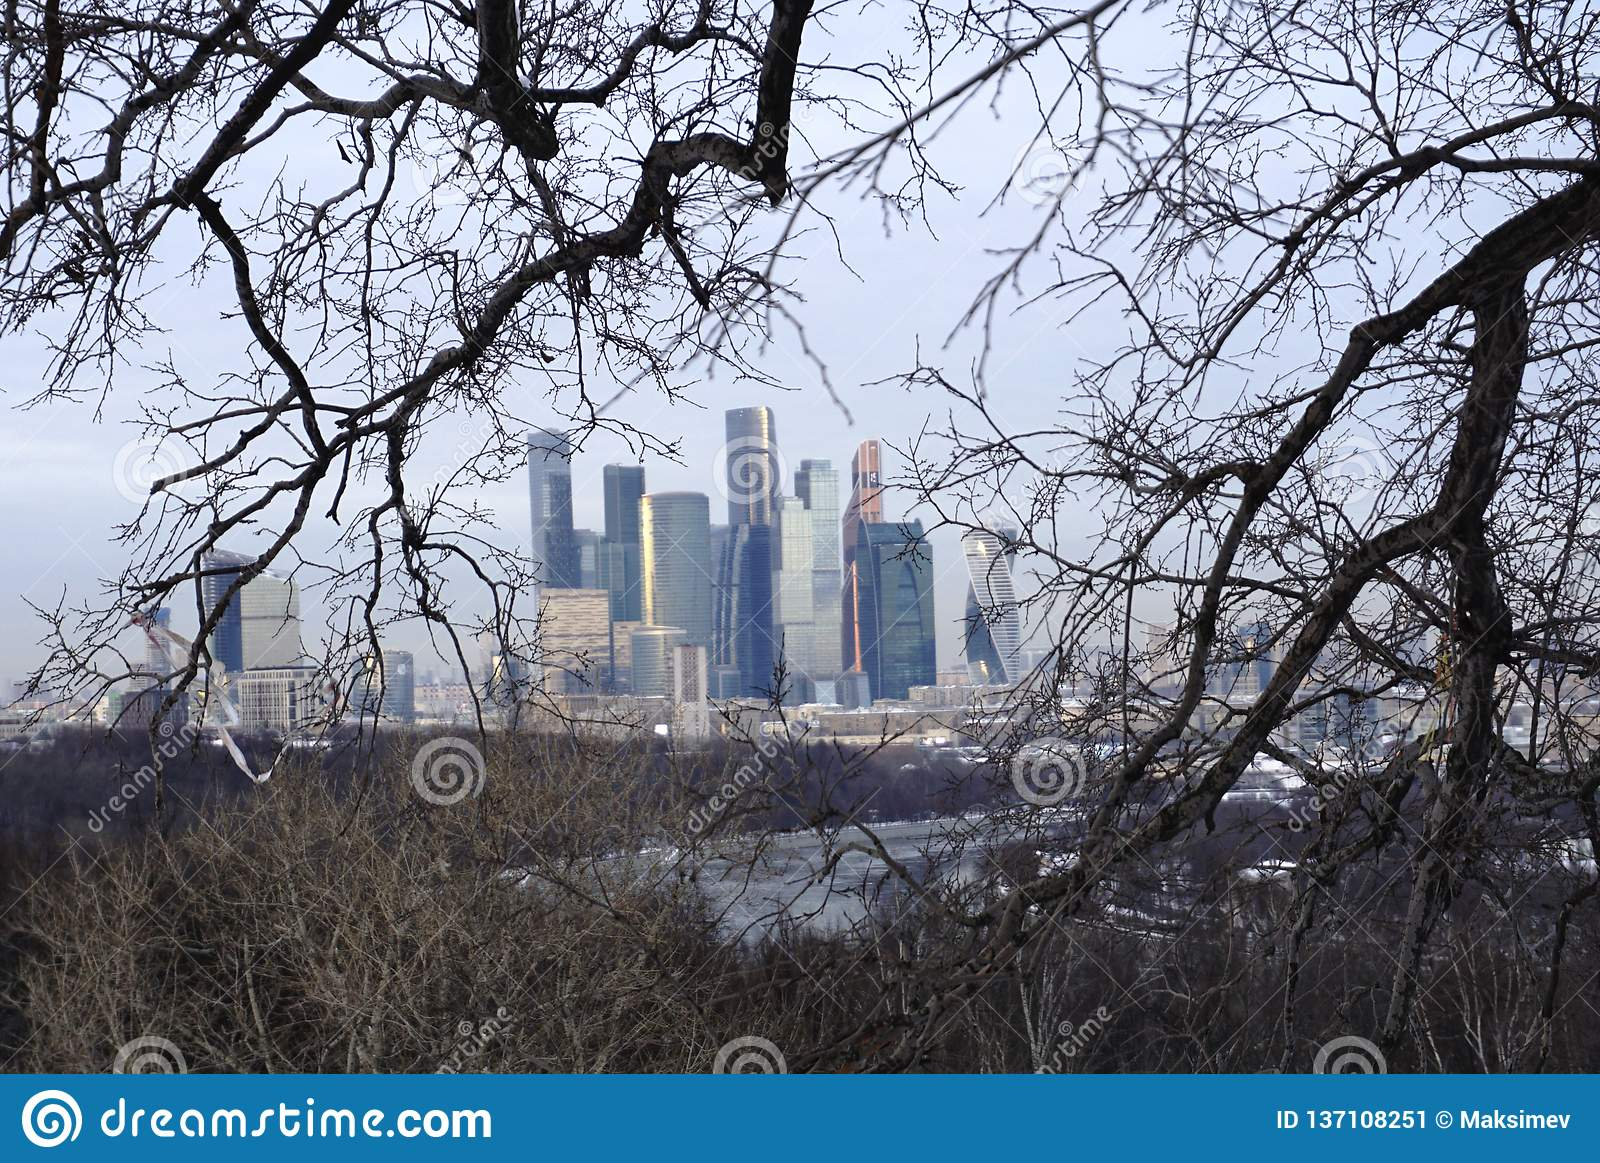 Tall buildings in the background in the branches of trees